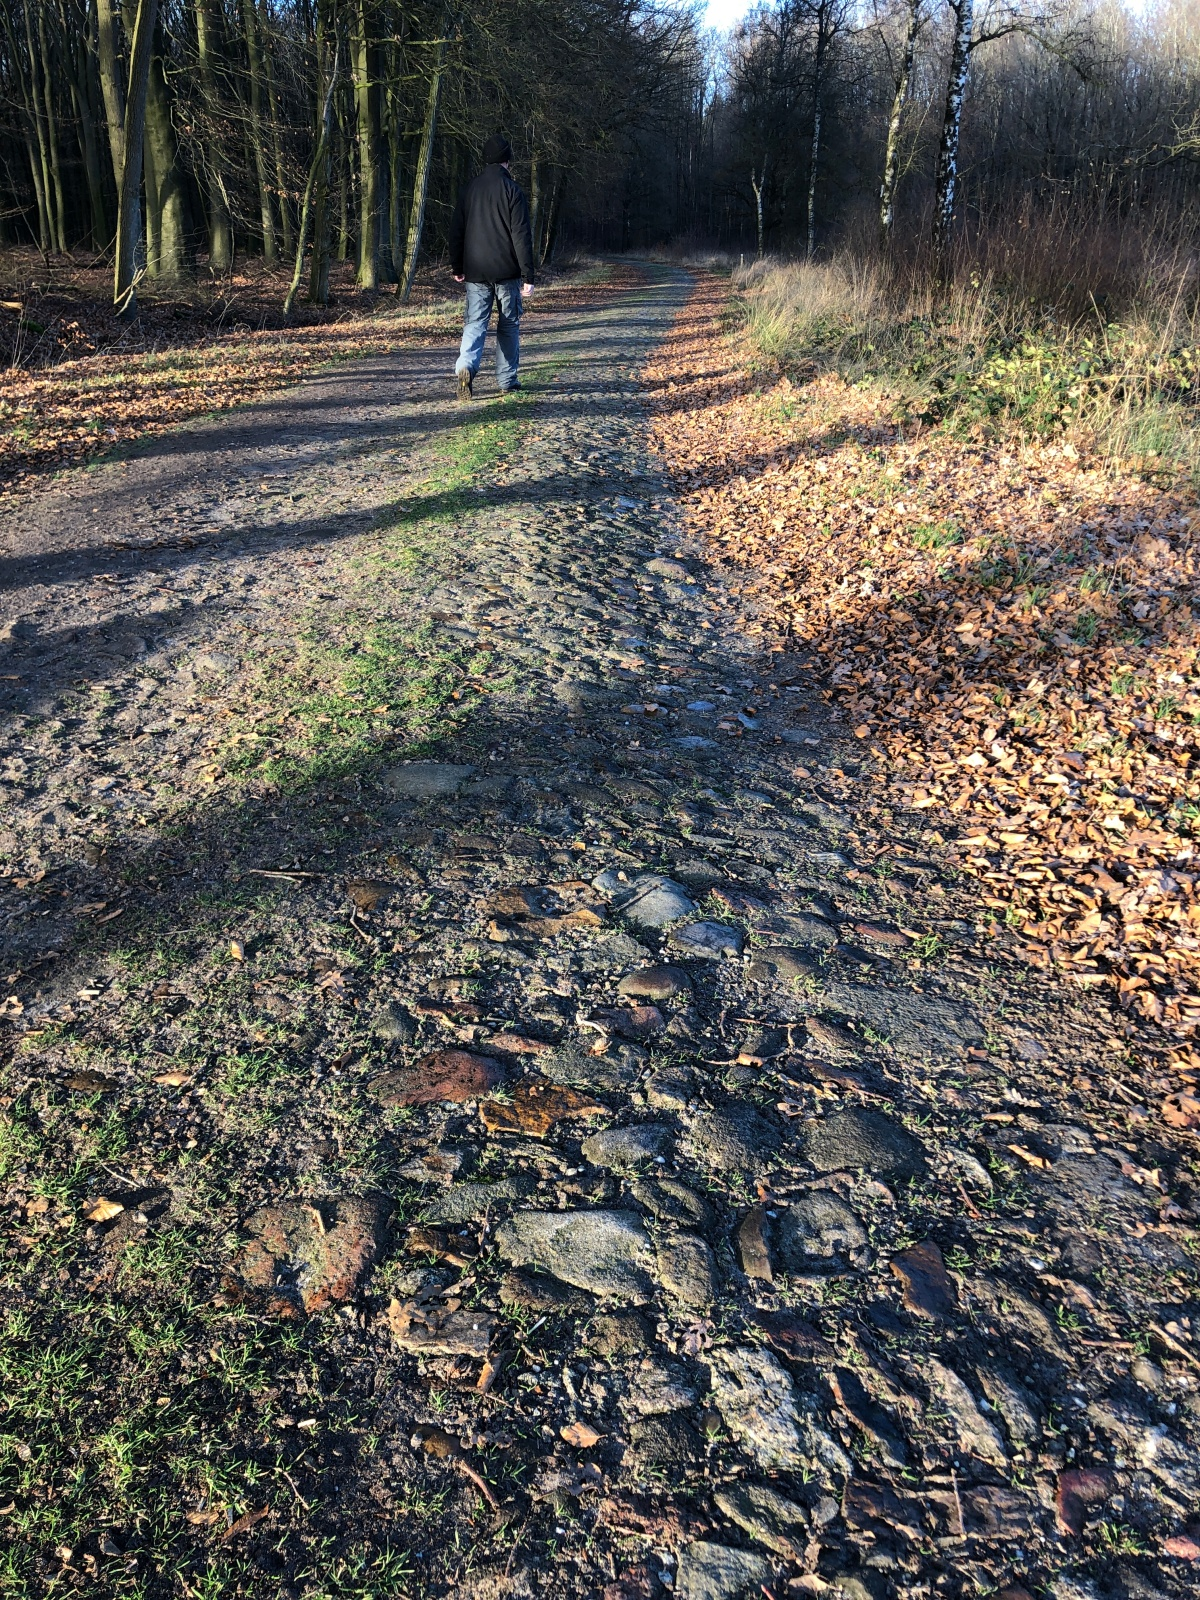 Stone road in the Drenthe forest